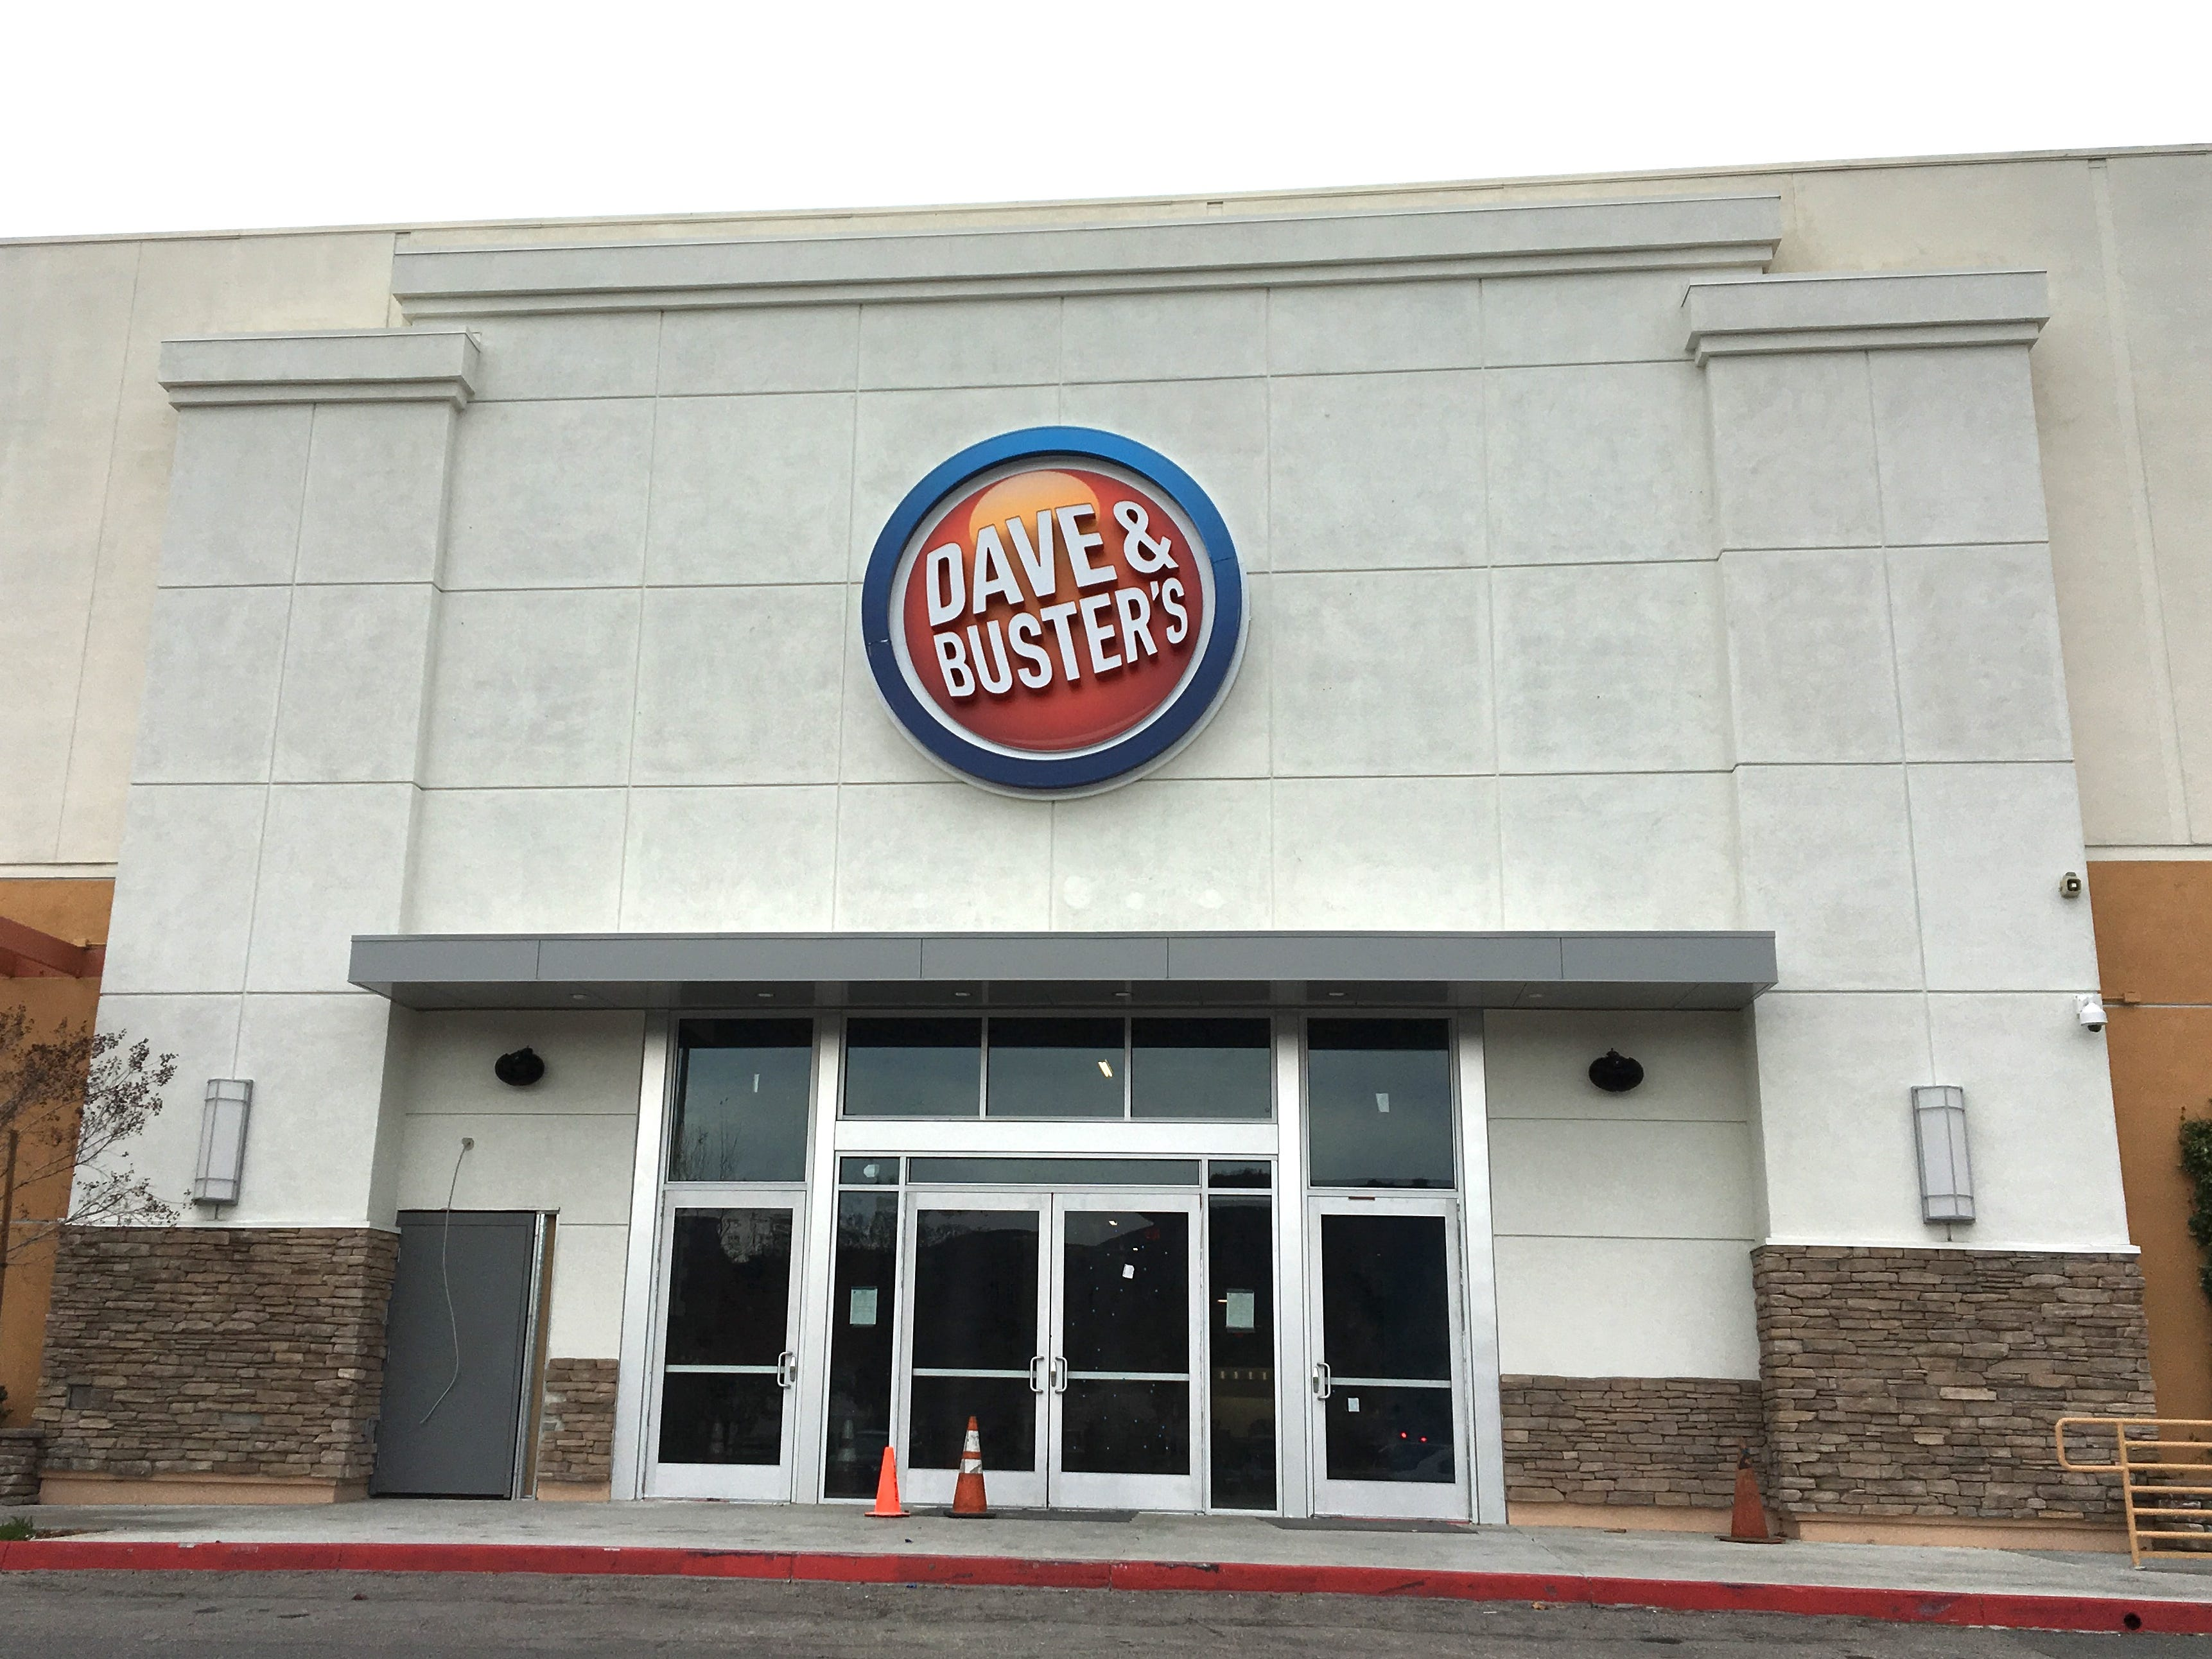 Opening March 4, Dave & Buster's is coming to Thousand Oaks at the former Sports Authority site in the Janss Marketplace. https://bit.ly/2SQRi7q